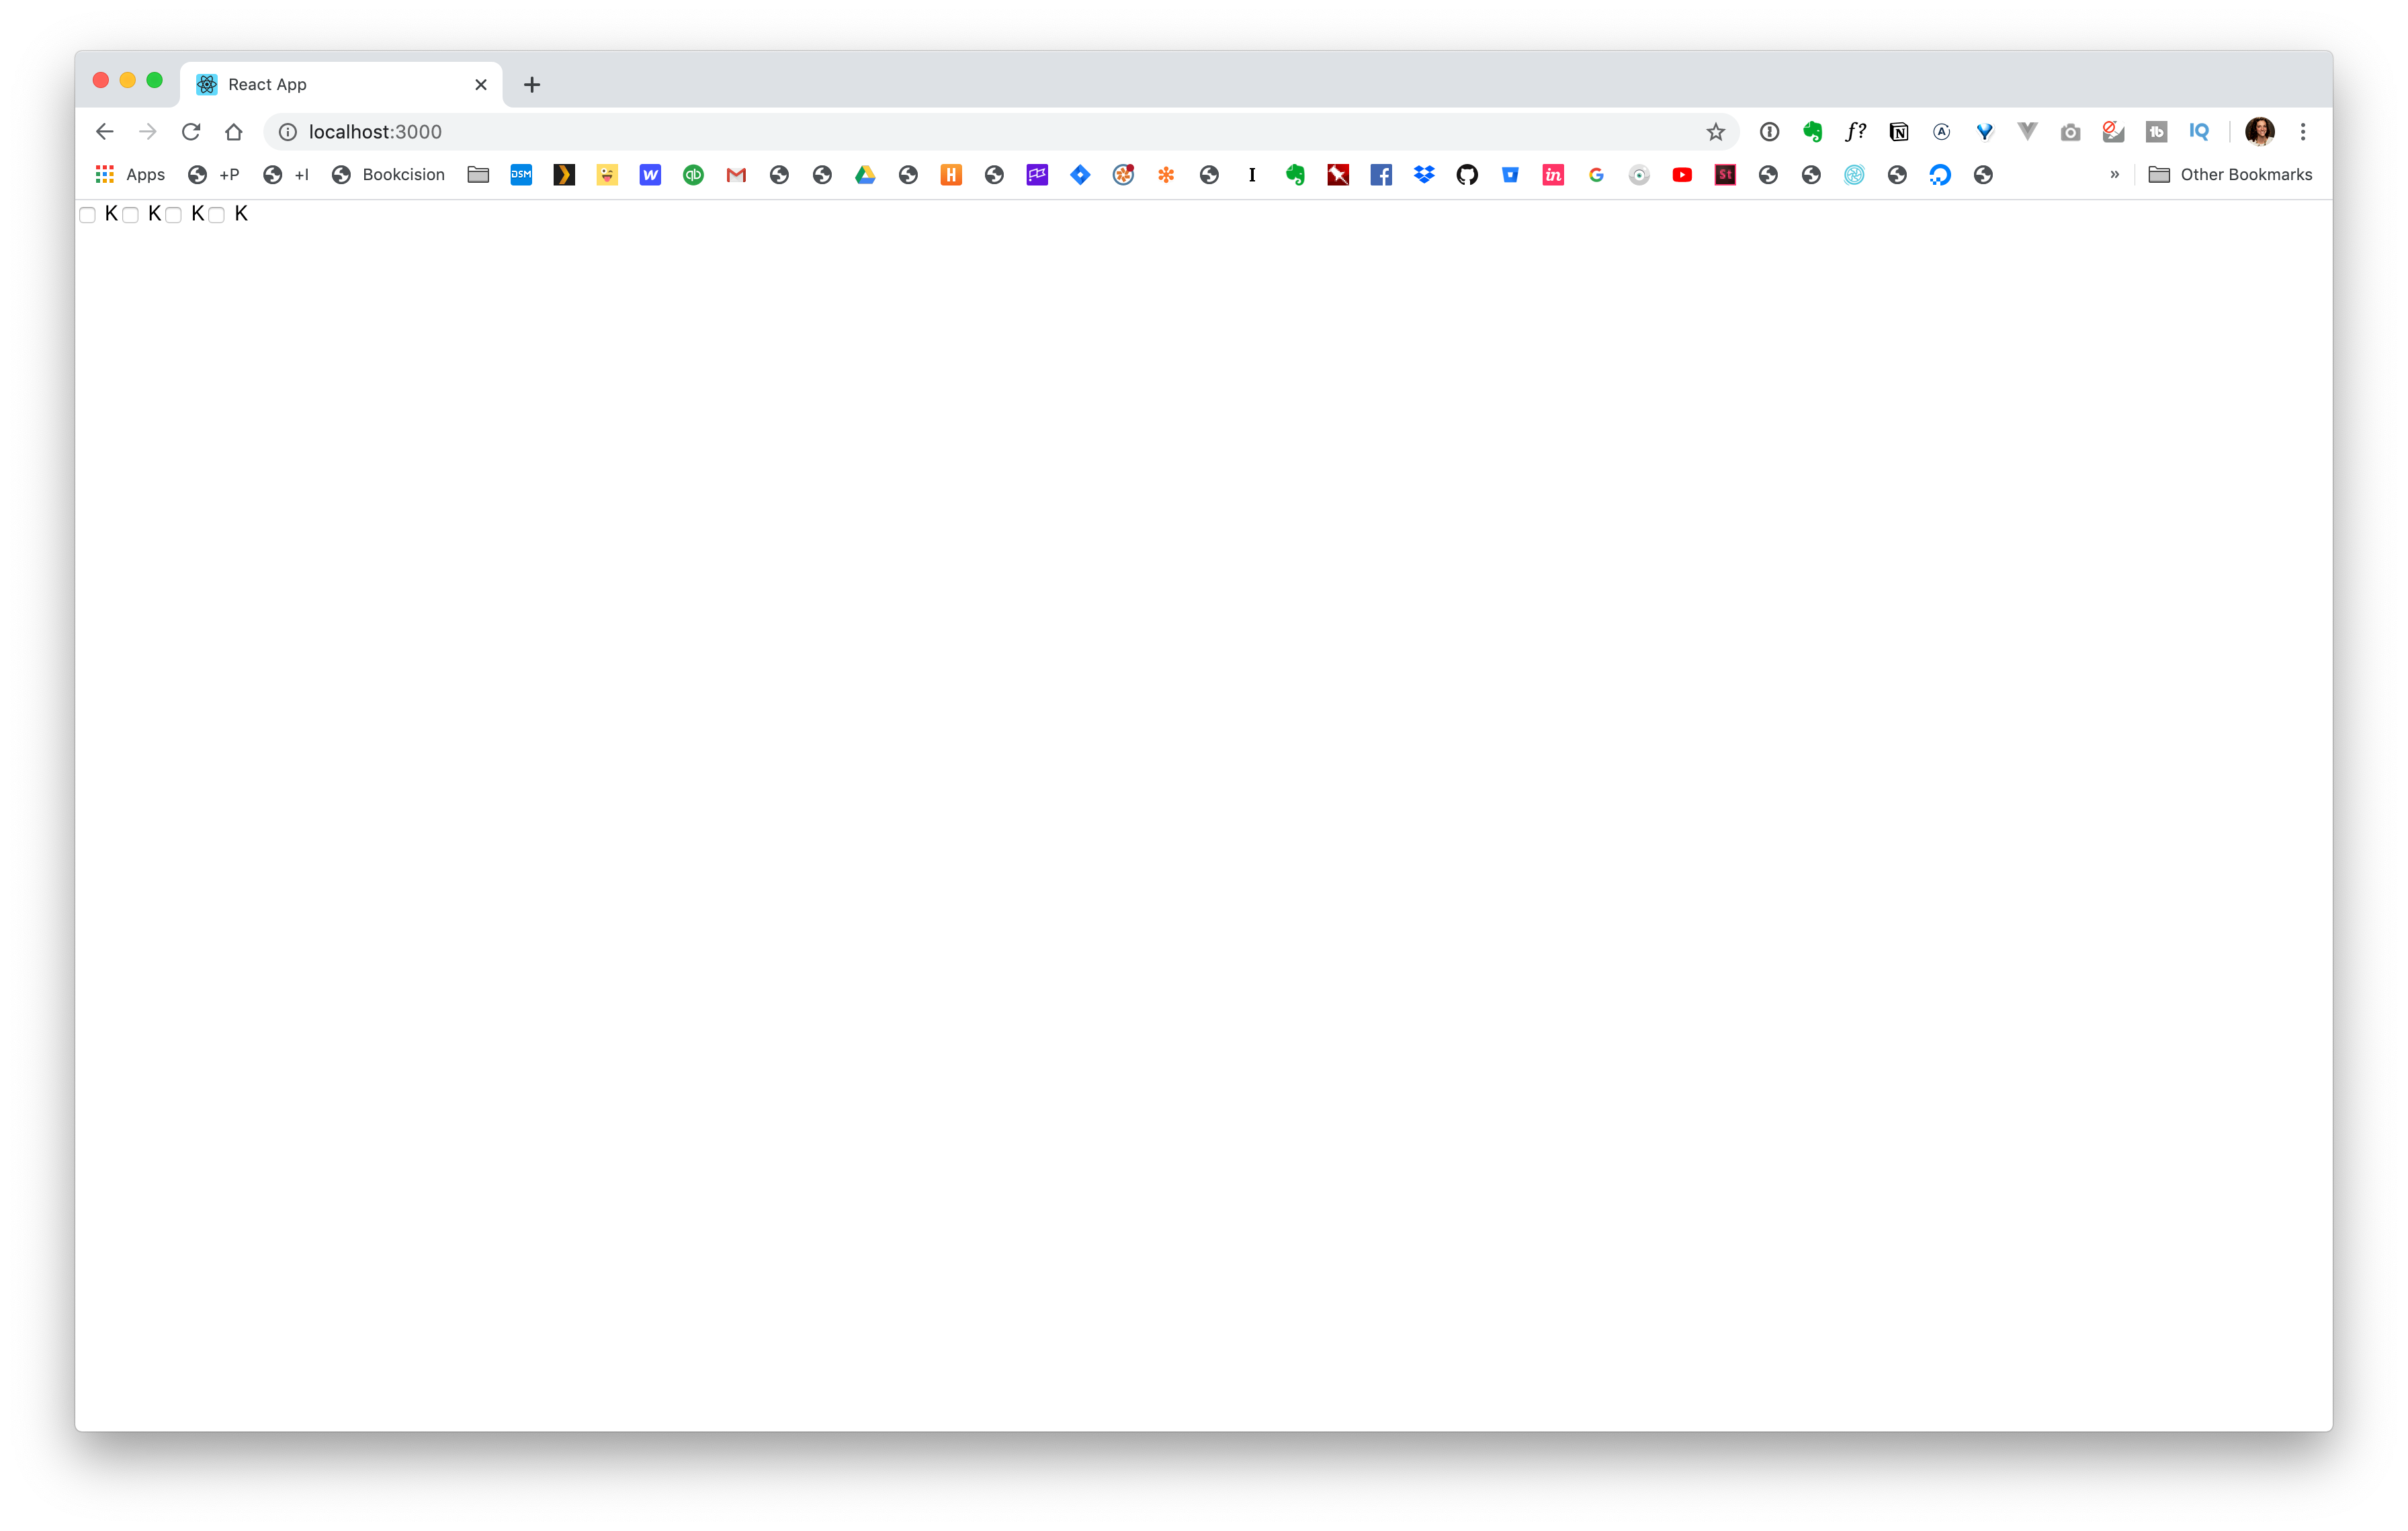 Checkboxes in the Browser